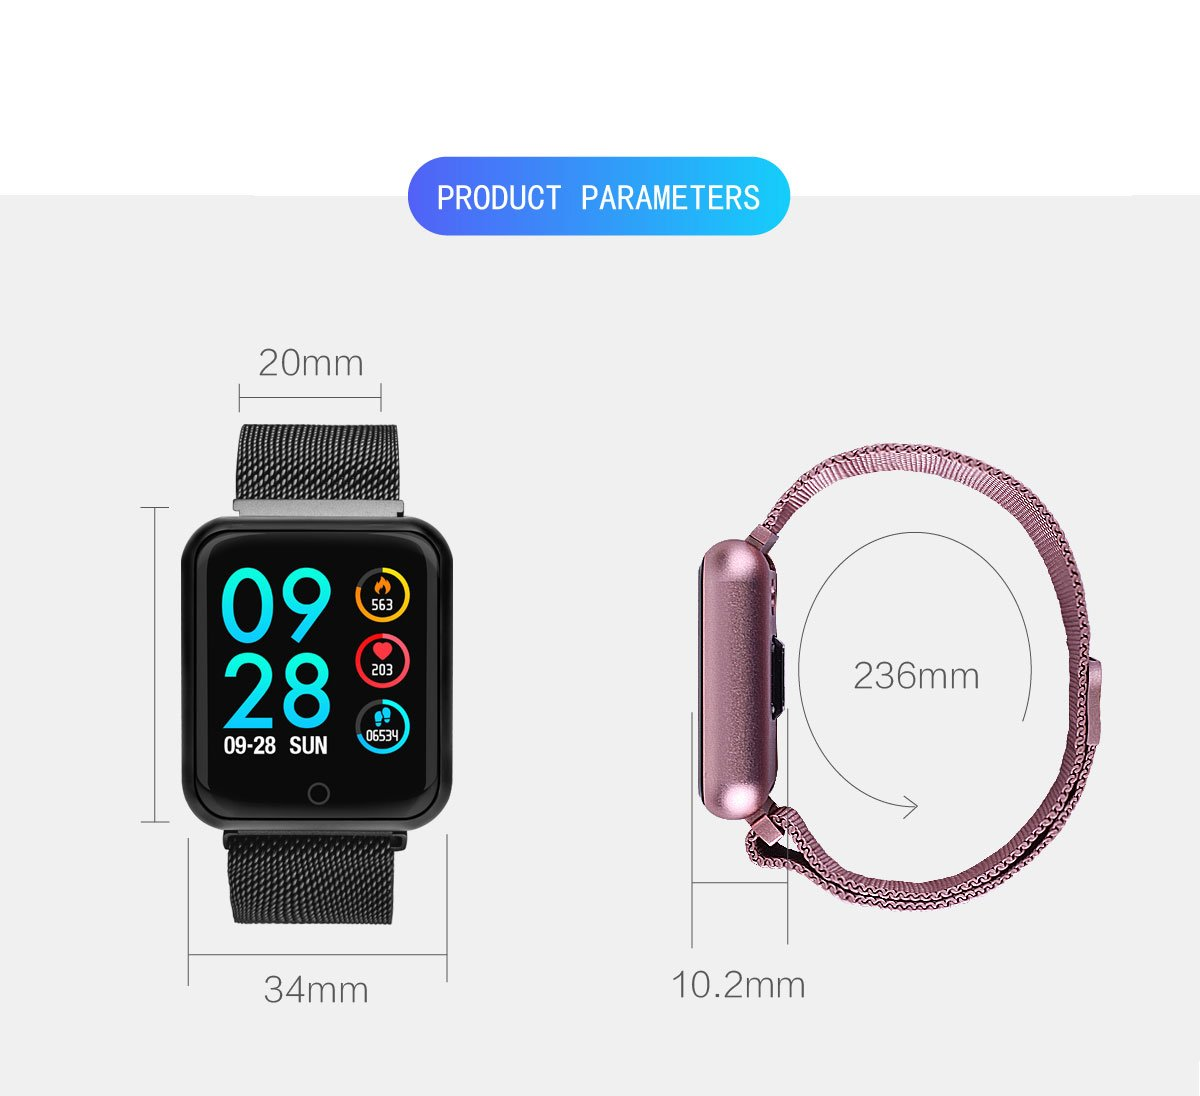 KingTo Activity Tracker Watch Waterproof with Heart Rate Monitor and Blood Pressure Monitor Fitness Tracker Watch Women and Men for Android and iOS Smartphone by KingTo (Image #7)